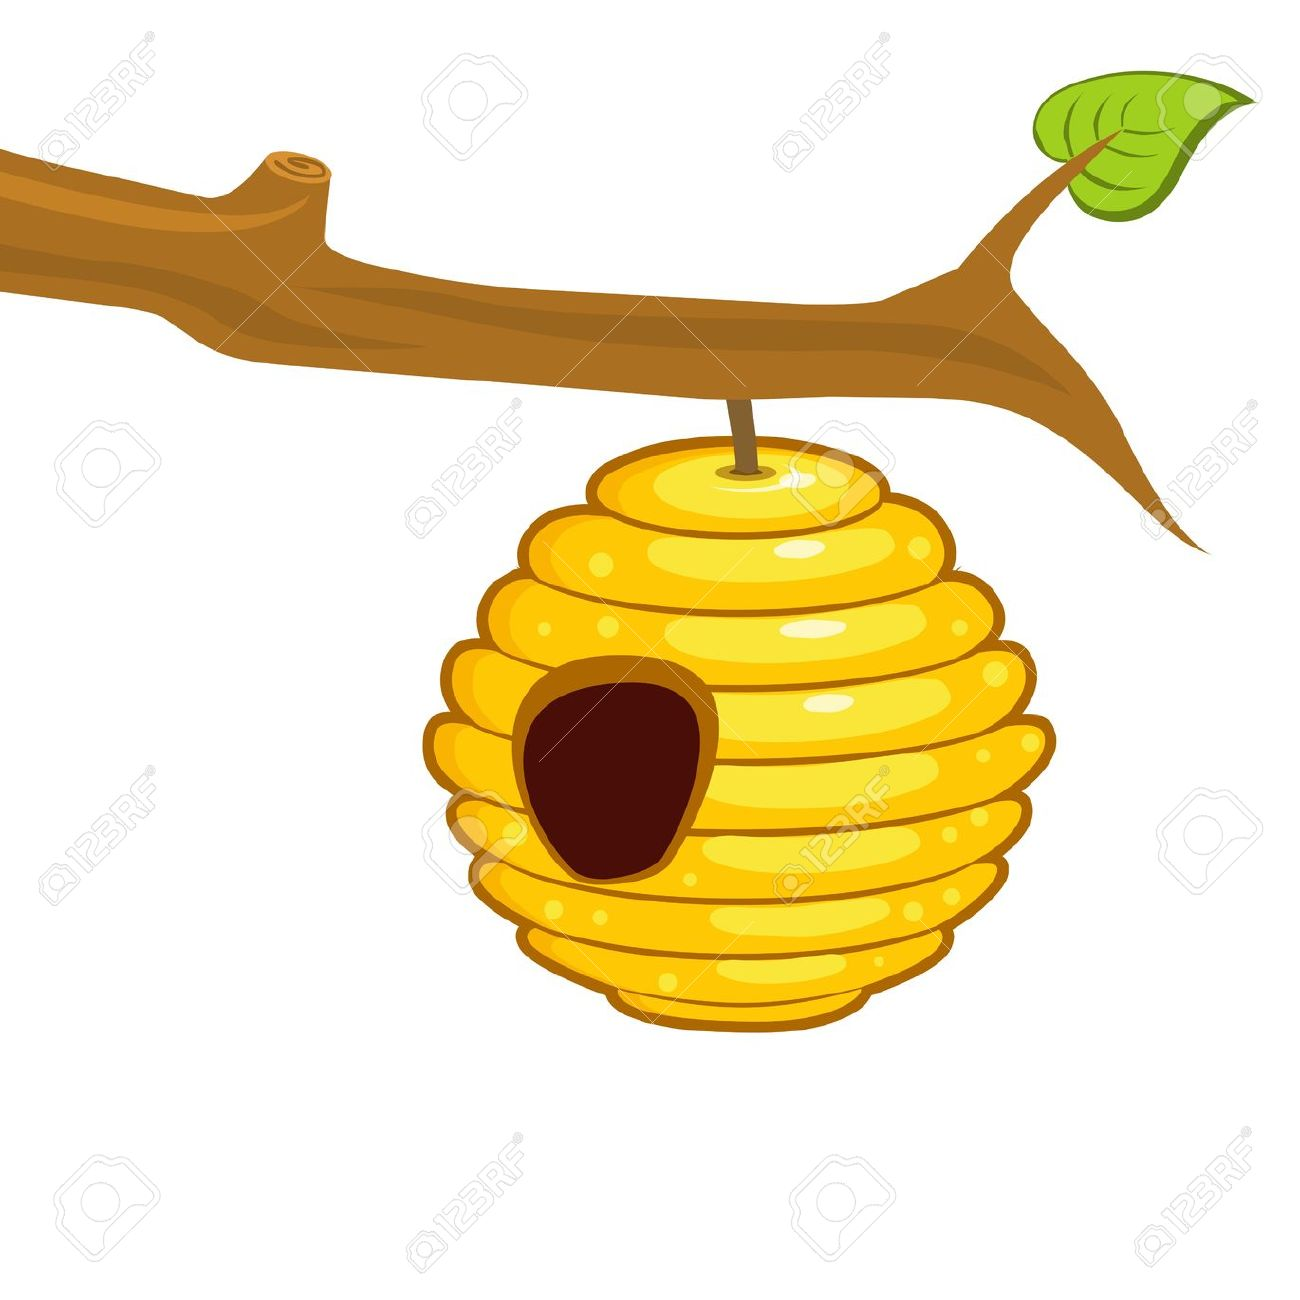 Beehive clipart 3